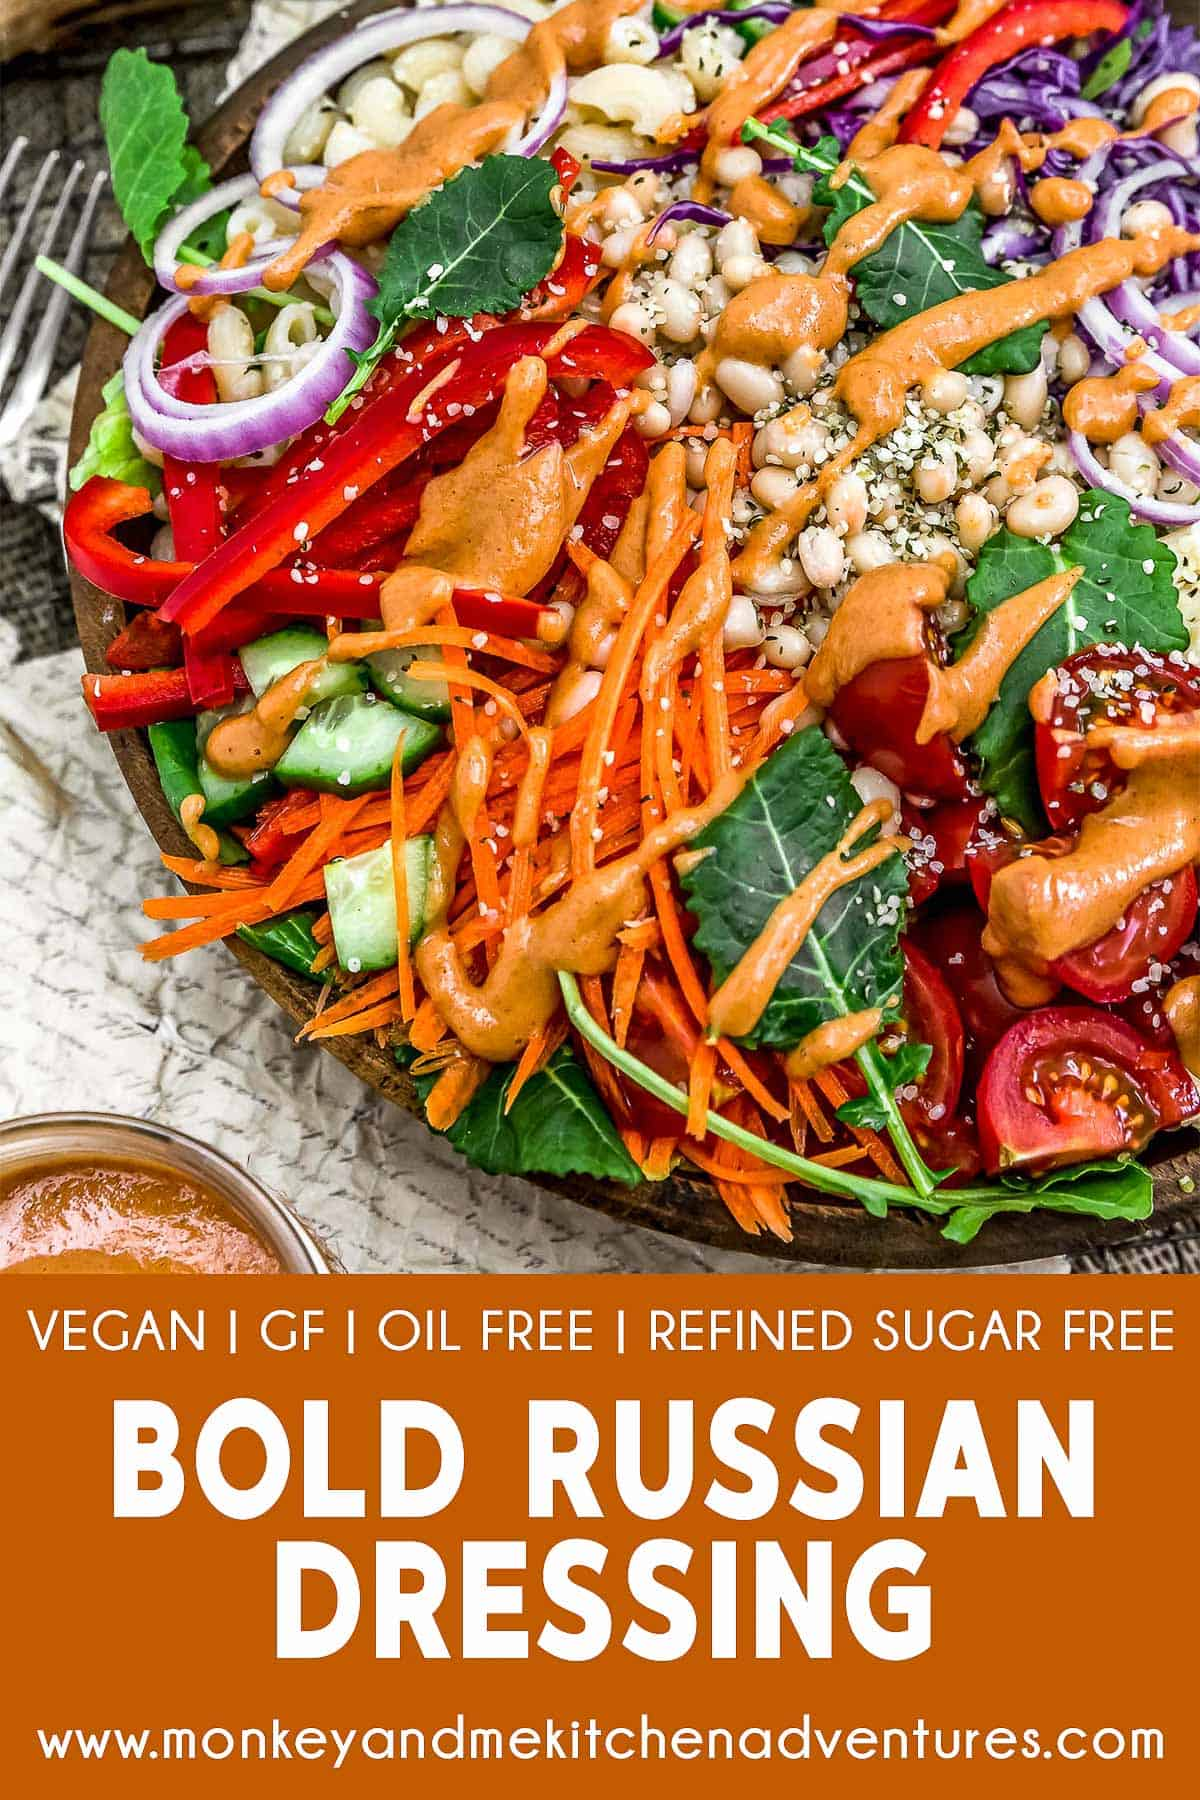 Bold Russian Dressing with text description